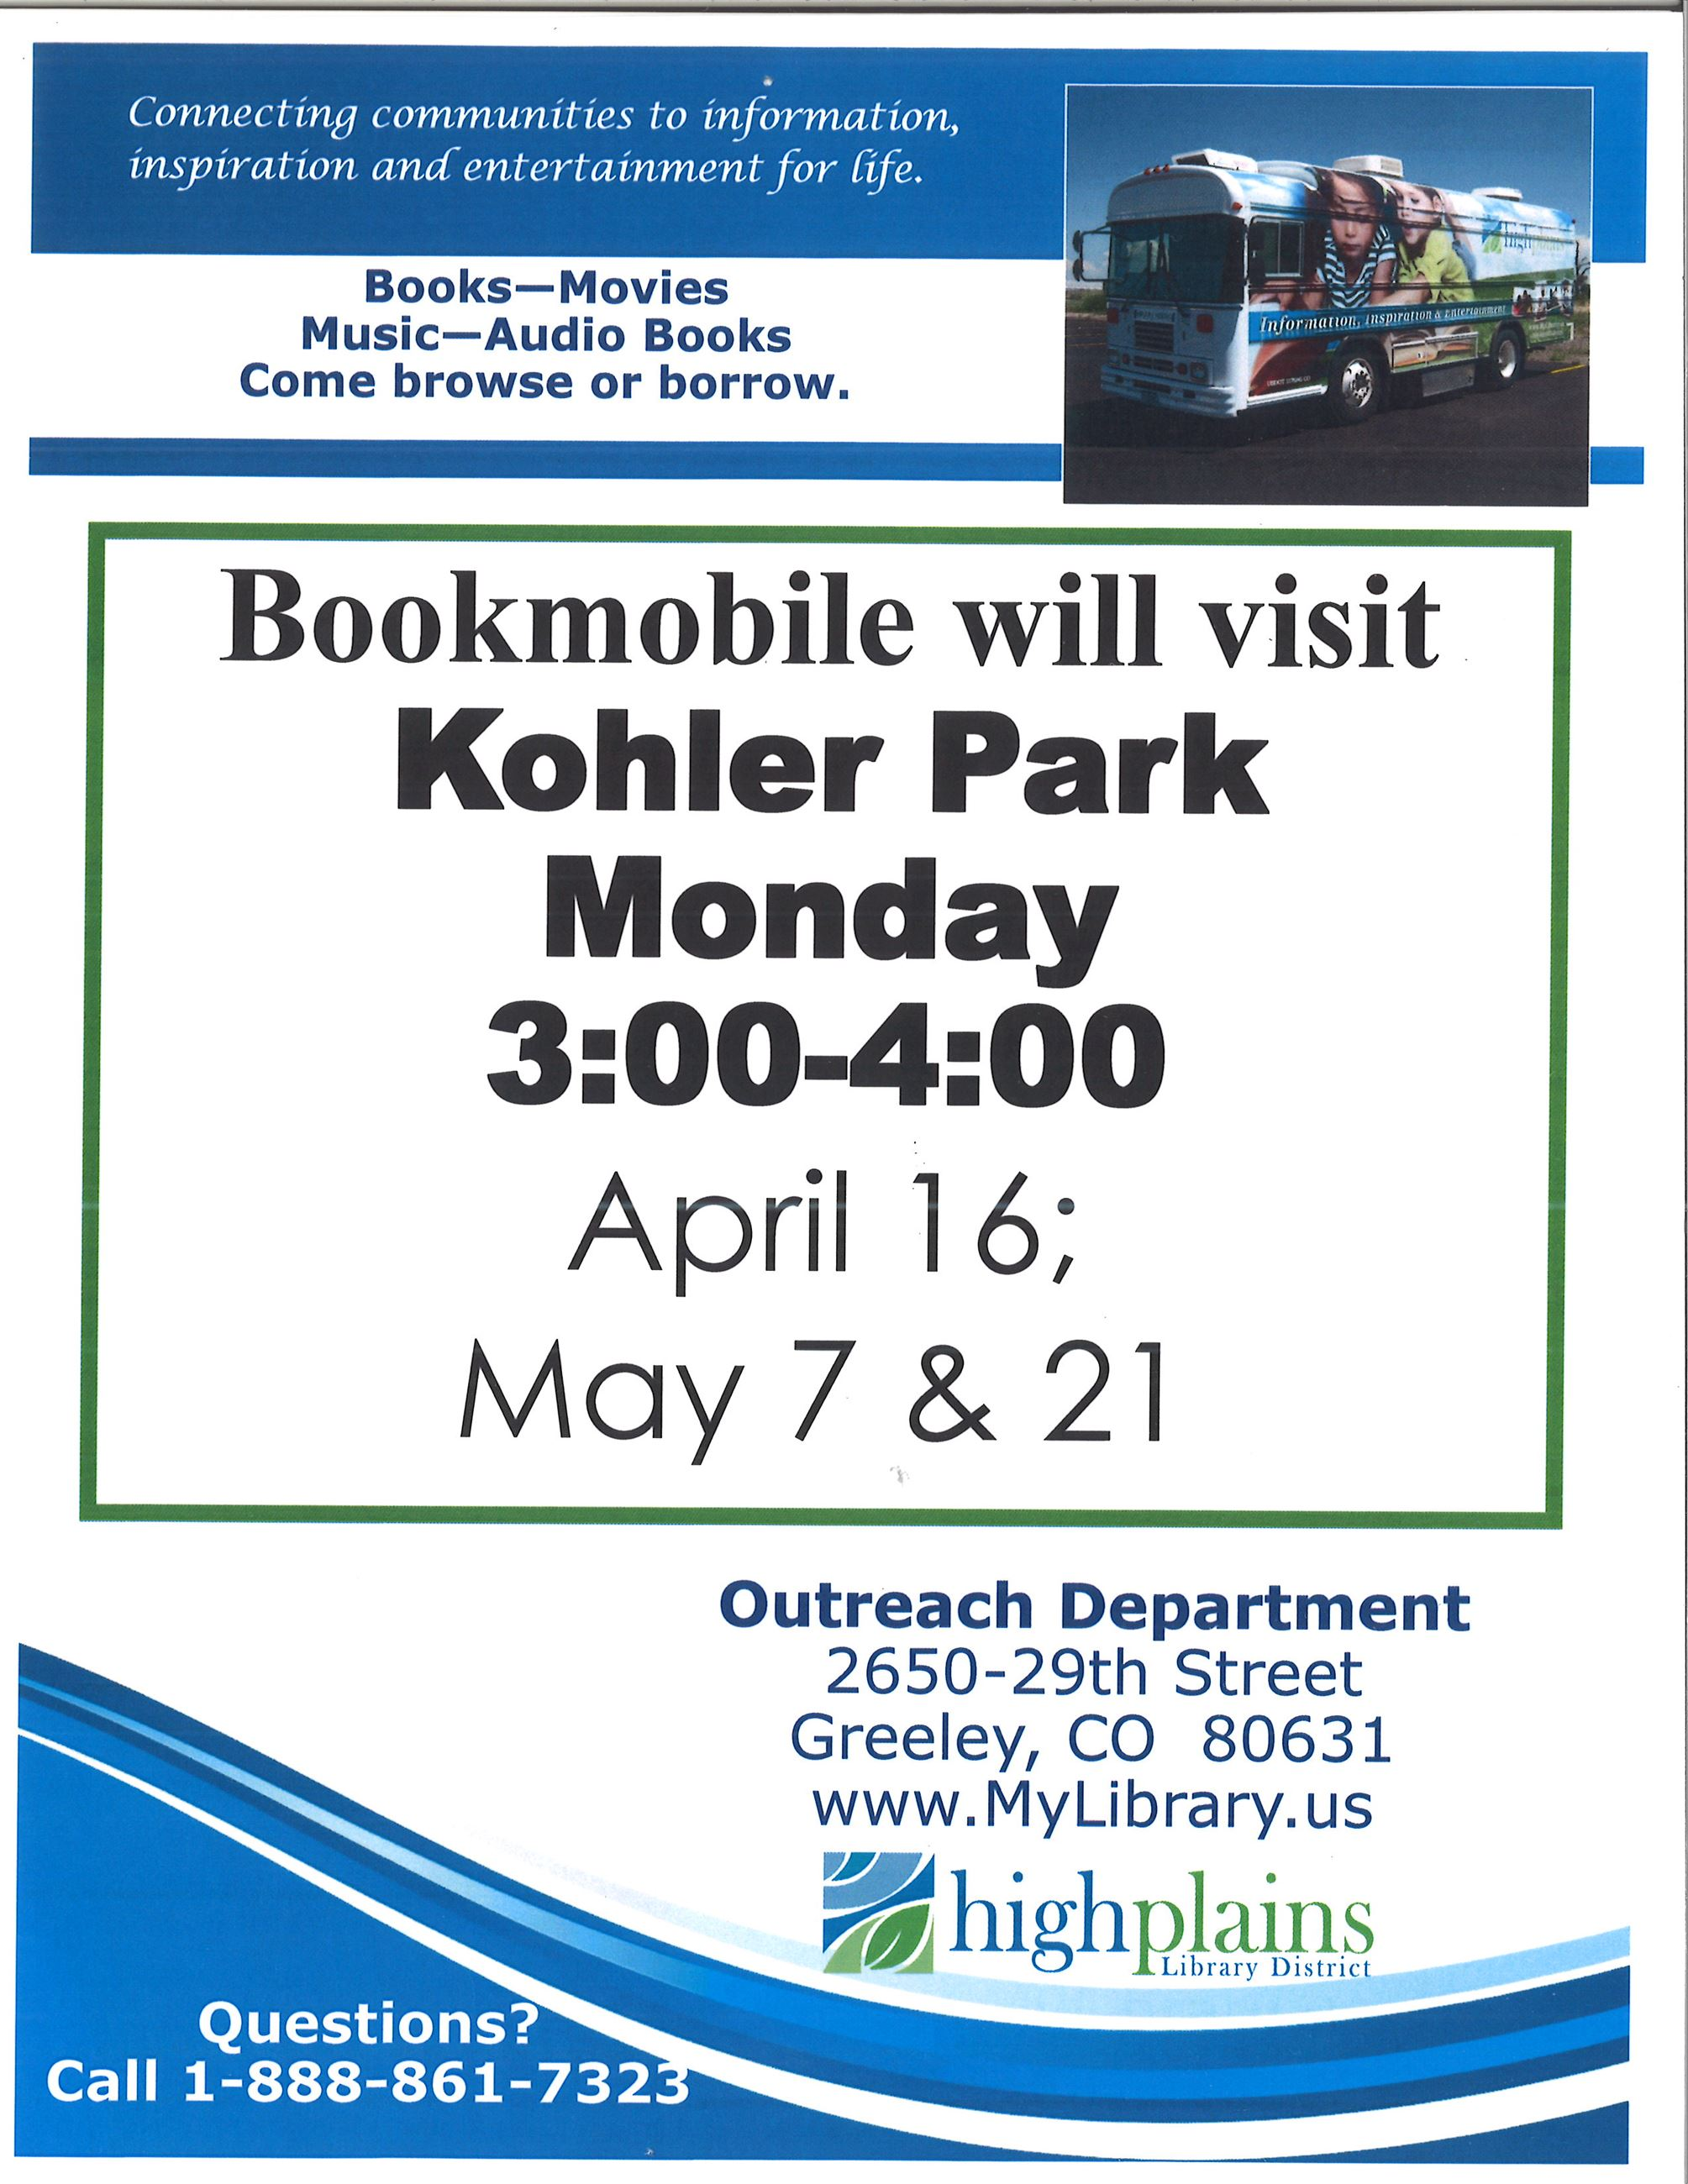 INFORMATIONAL FLYER GIVING DATES THE HIGH PLAINS LIBRARY BOOKMOBILE WILL BE IN KERSEY WITH A PICTURE